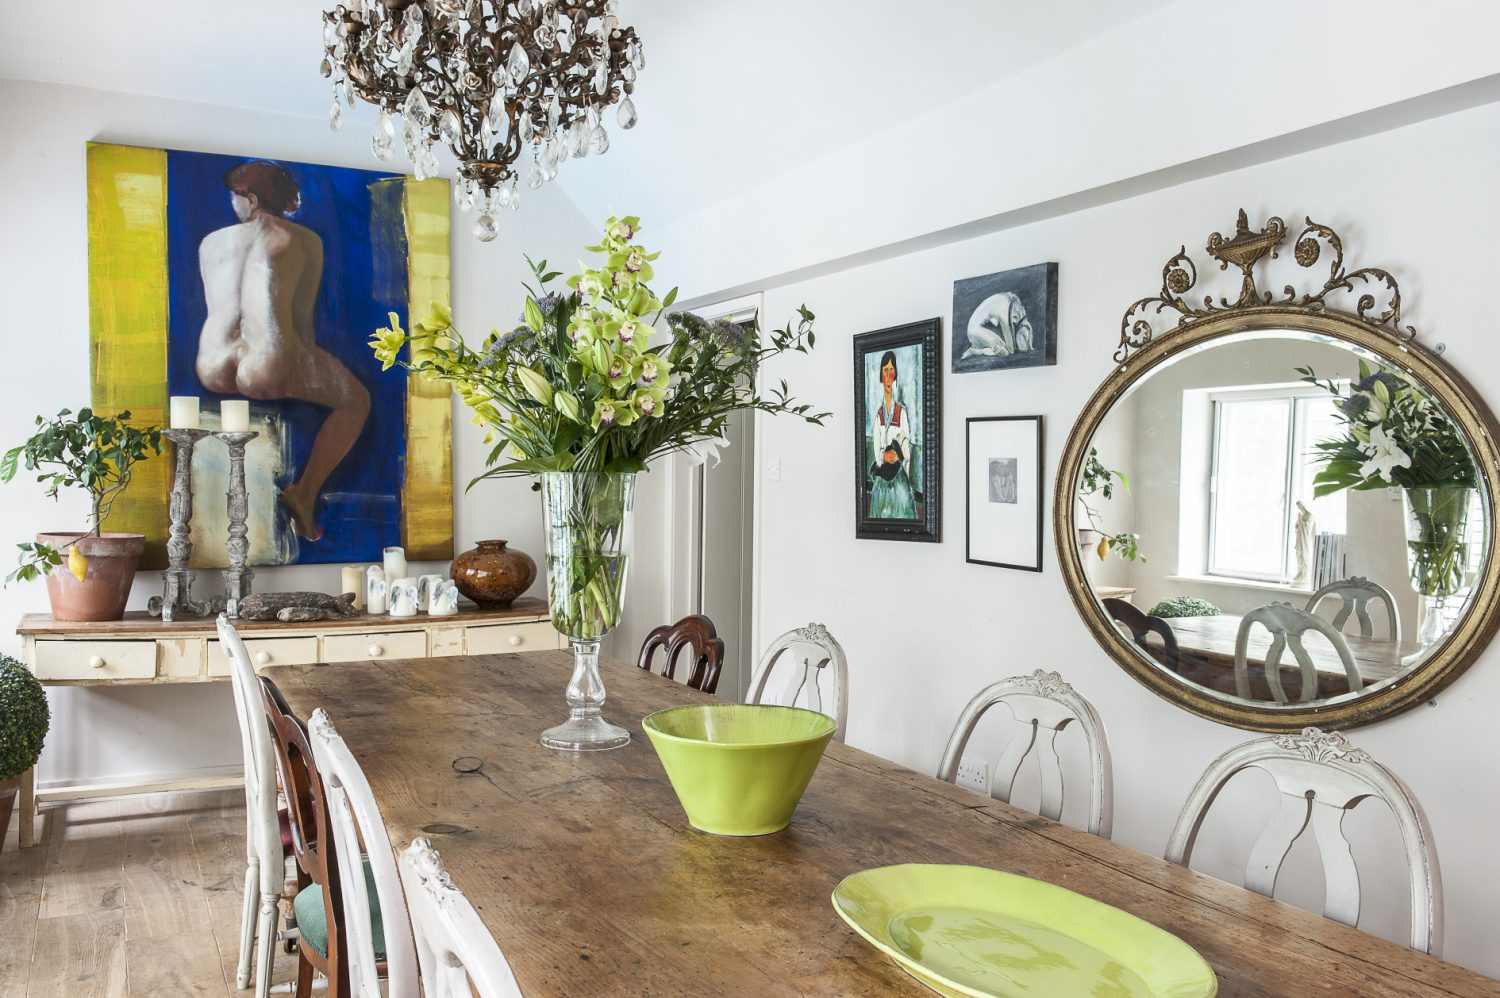 The long, high and bright dining room has more than a touch of orangery about it